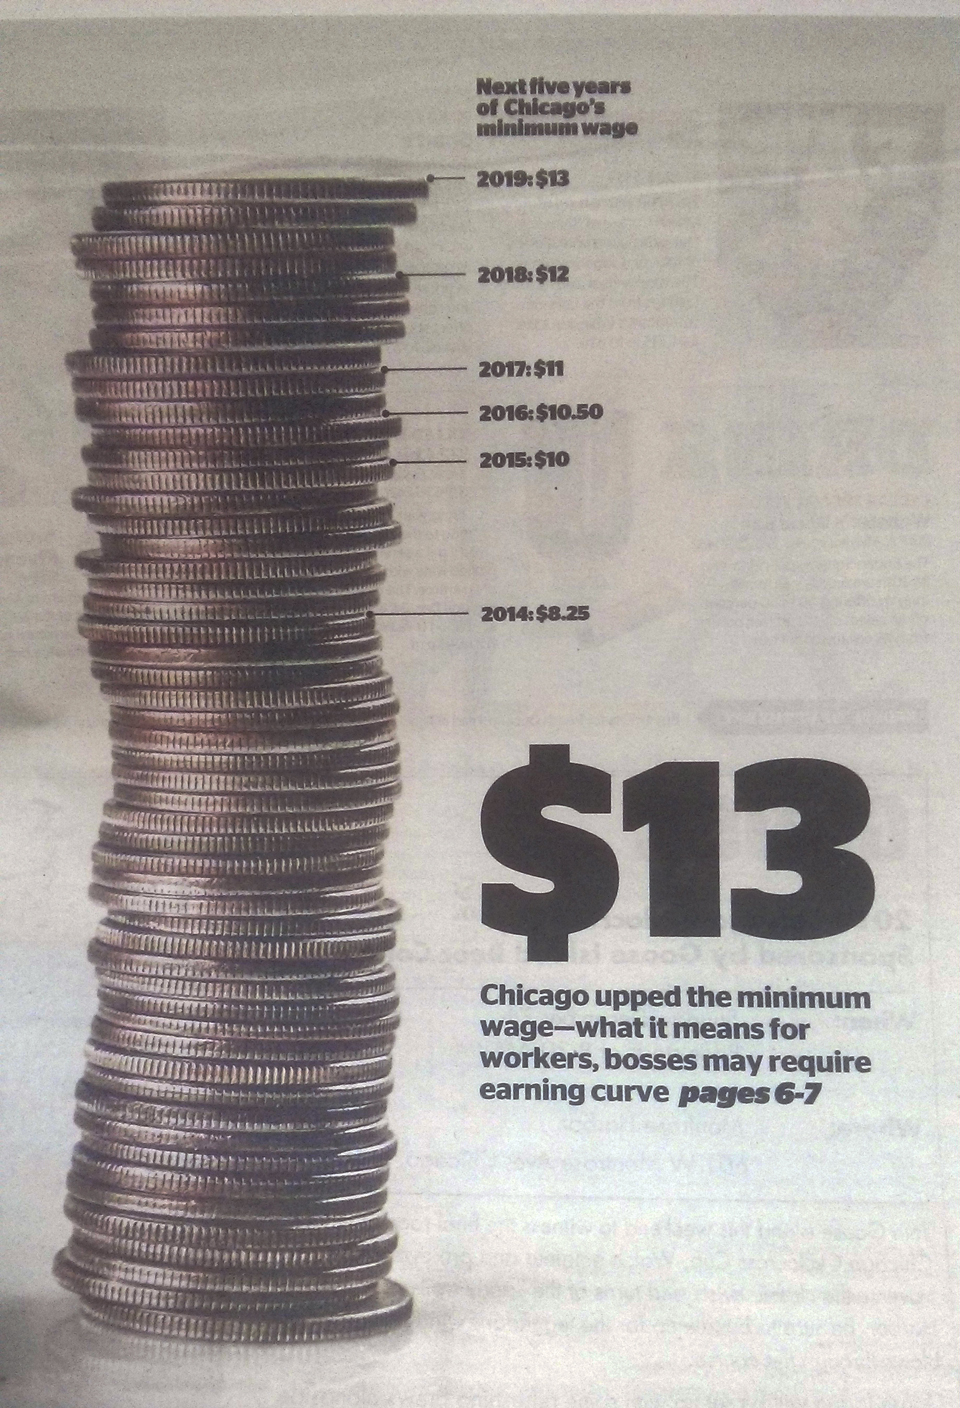 The minimum wage in Chicago